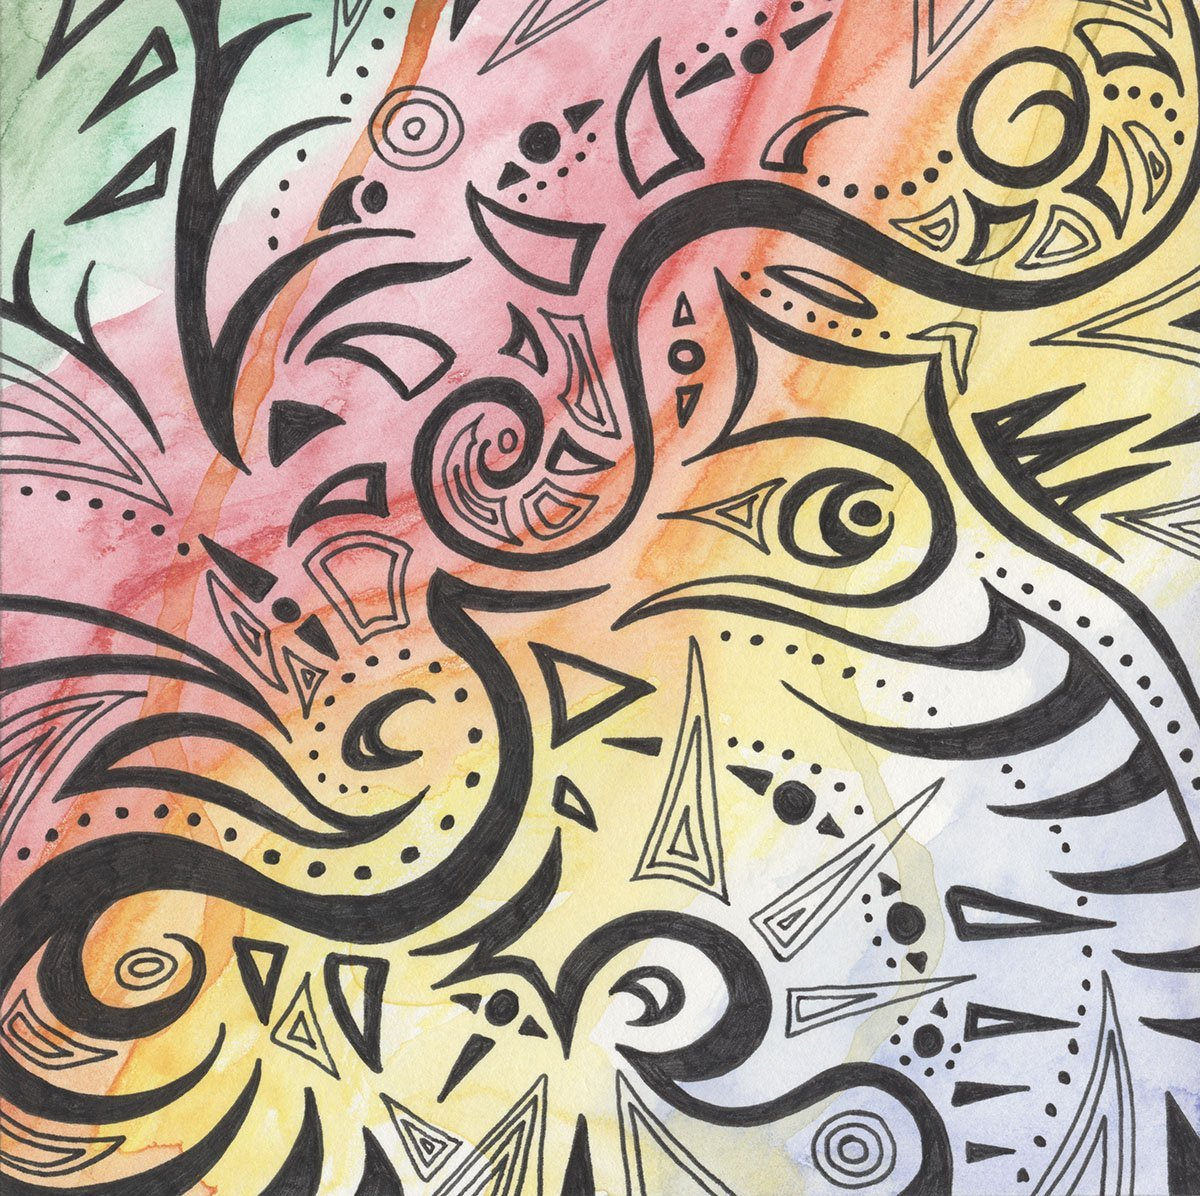 The image shows a piece of artwork by Jina Wallwork. It is an ink and watercolor painting that depicts the feeling of bliss. Stylistically this piece of artwork has links with abstract art.